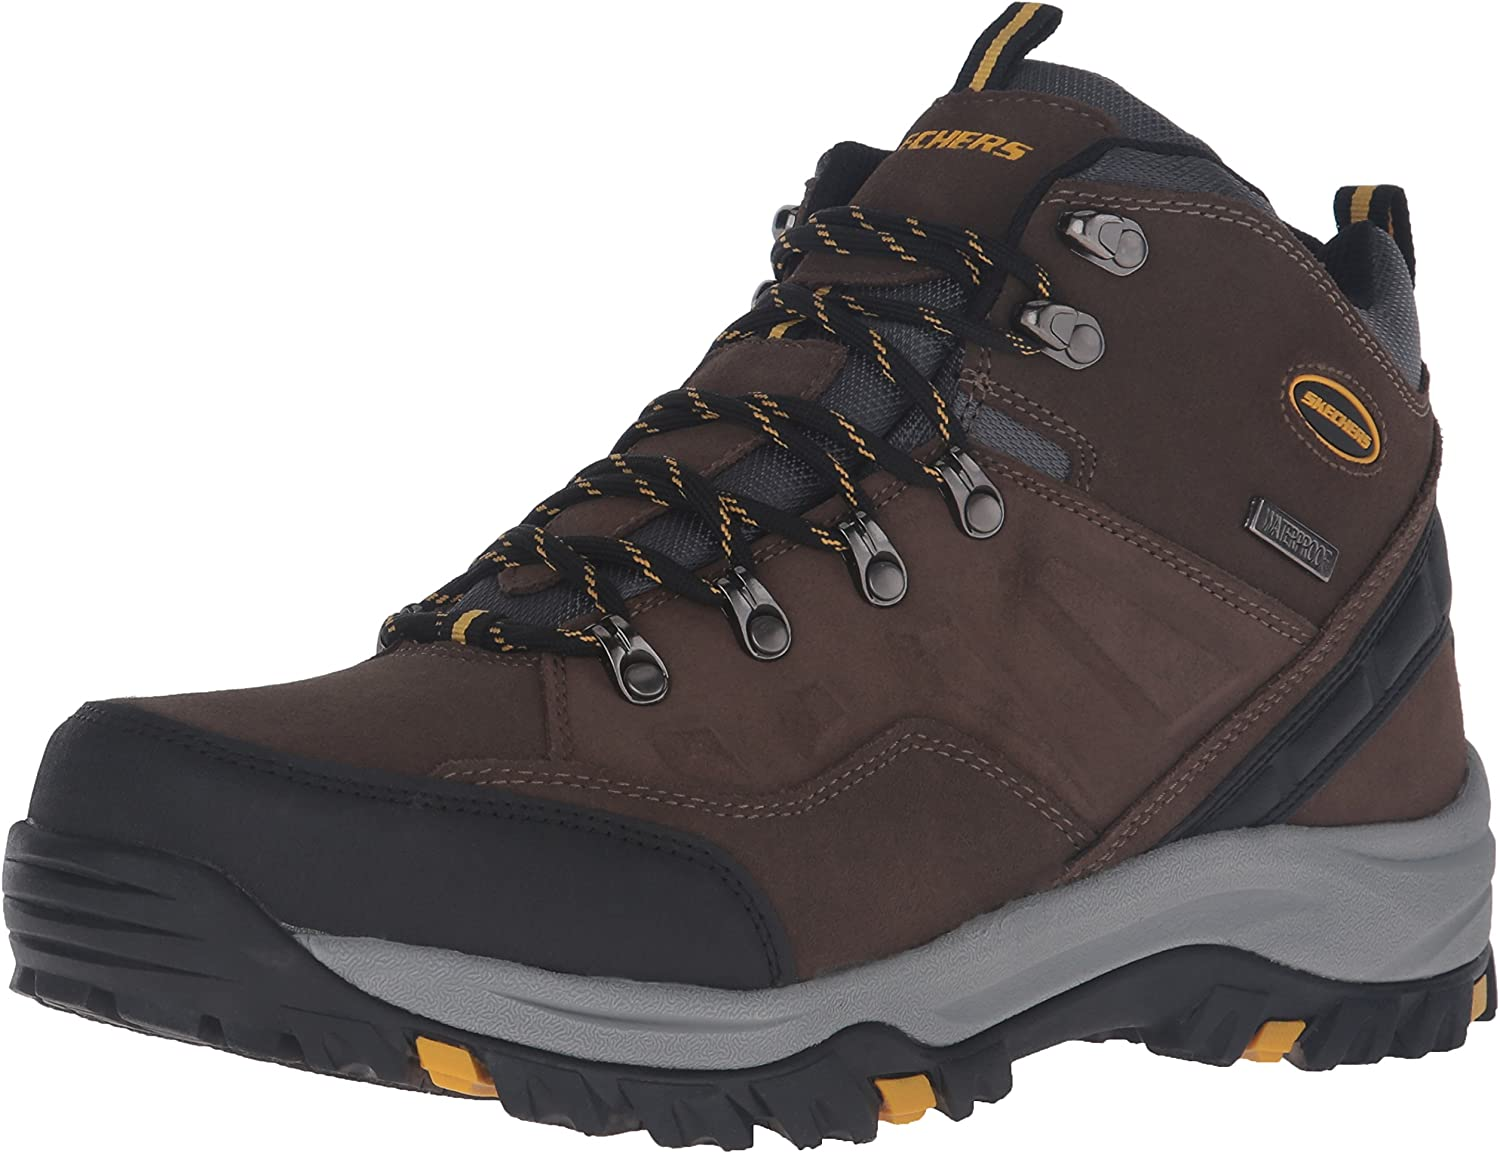 Skechers Men s Relment Pelmo Chukka Waterproof Boot